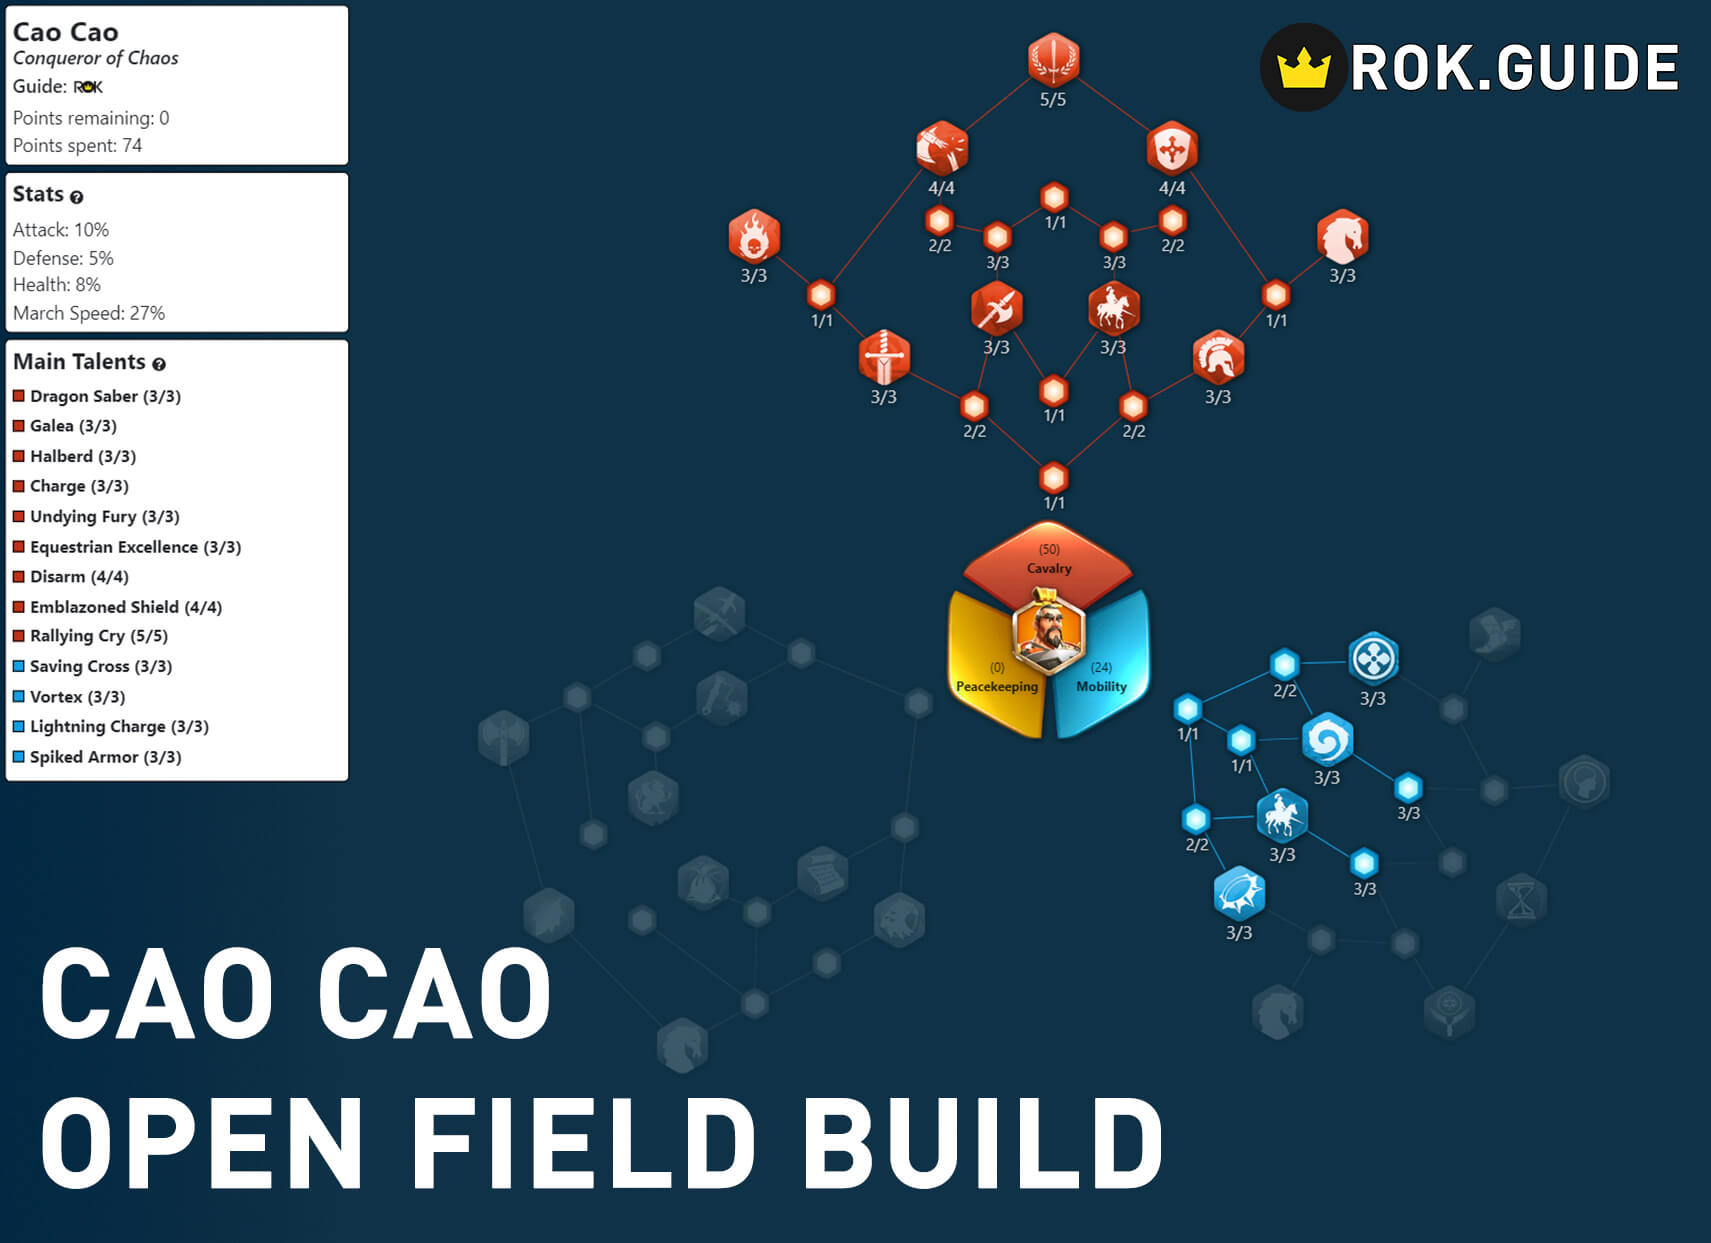 cao cao openfield build